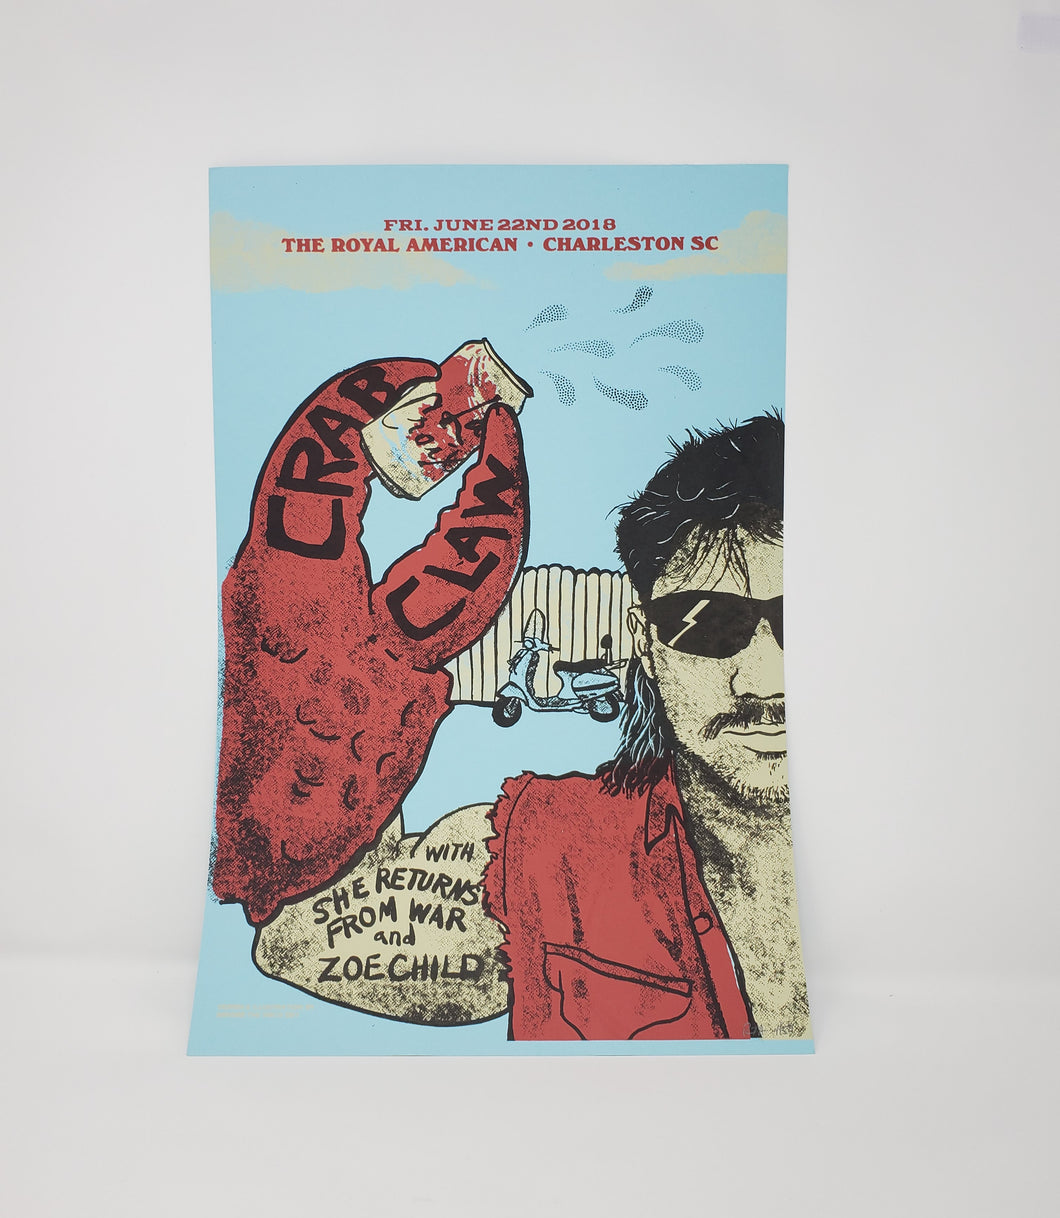 CRAB CLAW, live at the Royal American 2018 Poster